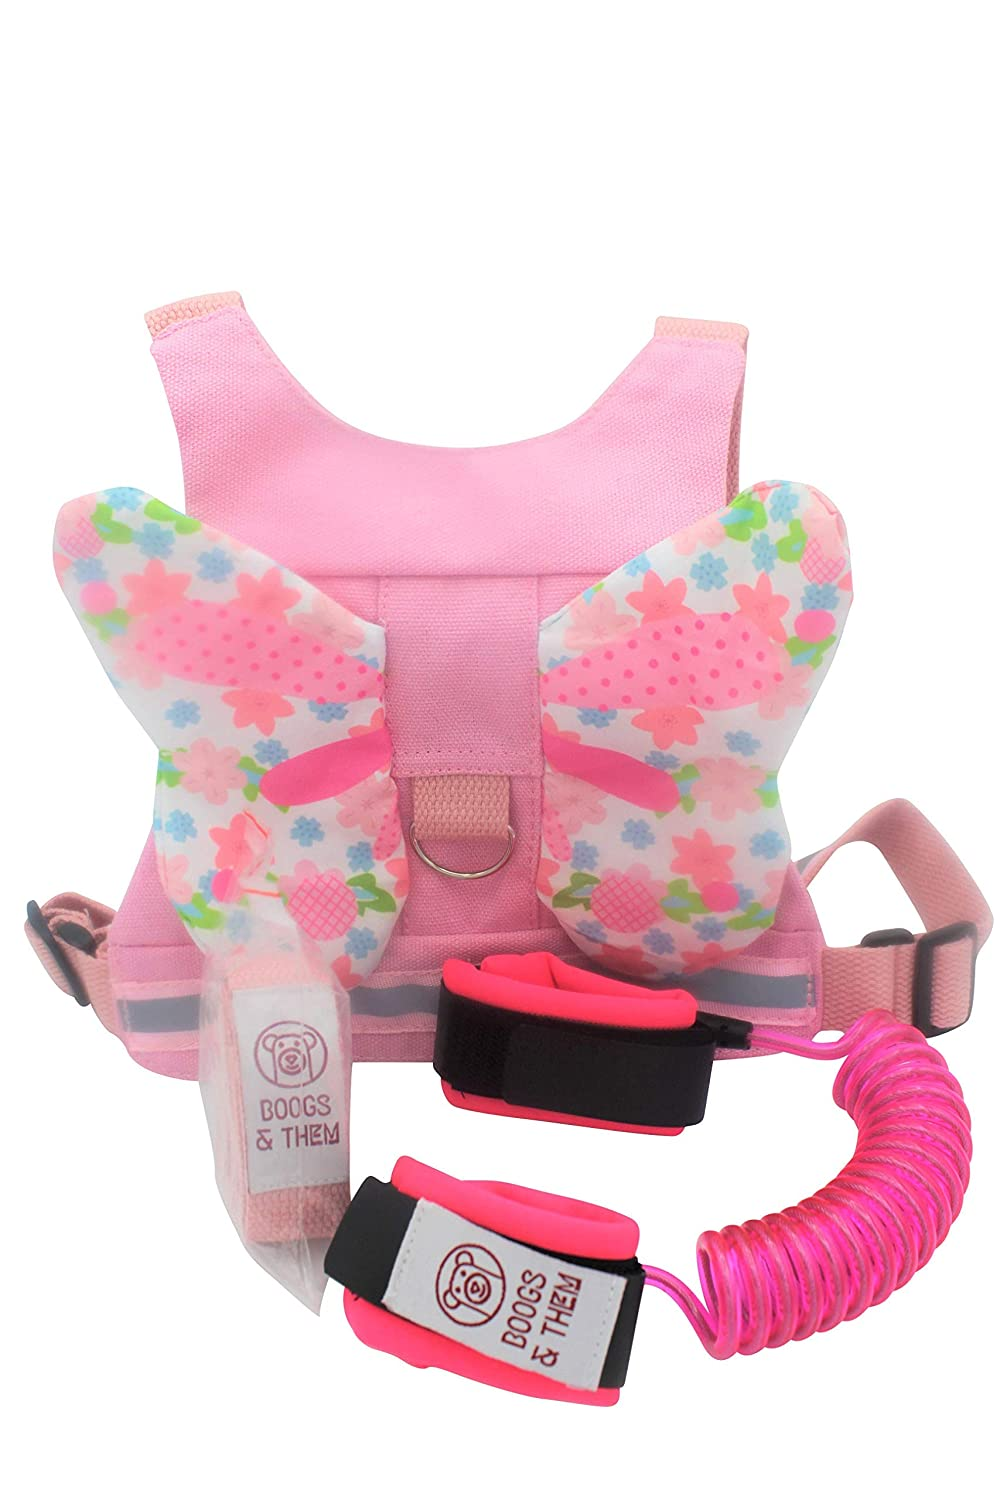 Premium and Adjustable Child Safety Harness | Safety Harness and Wrist Leash to Keep Child Safe | Light Reflective Strips ENSURES Visibility at Night (Pink)